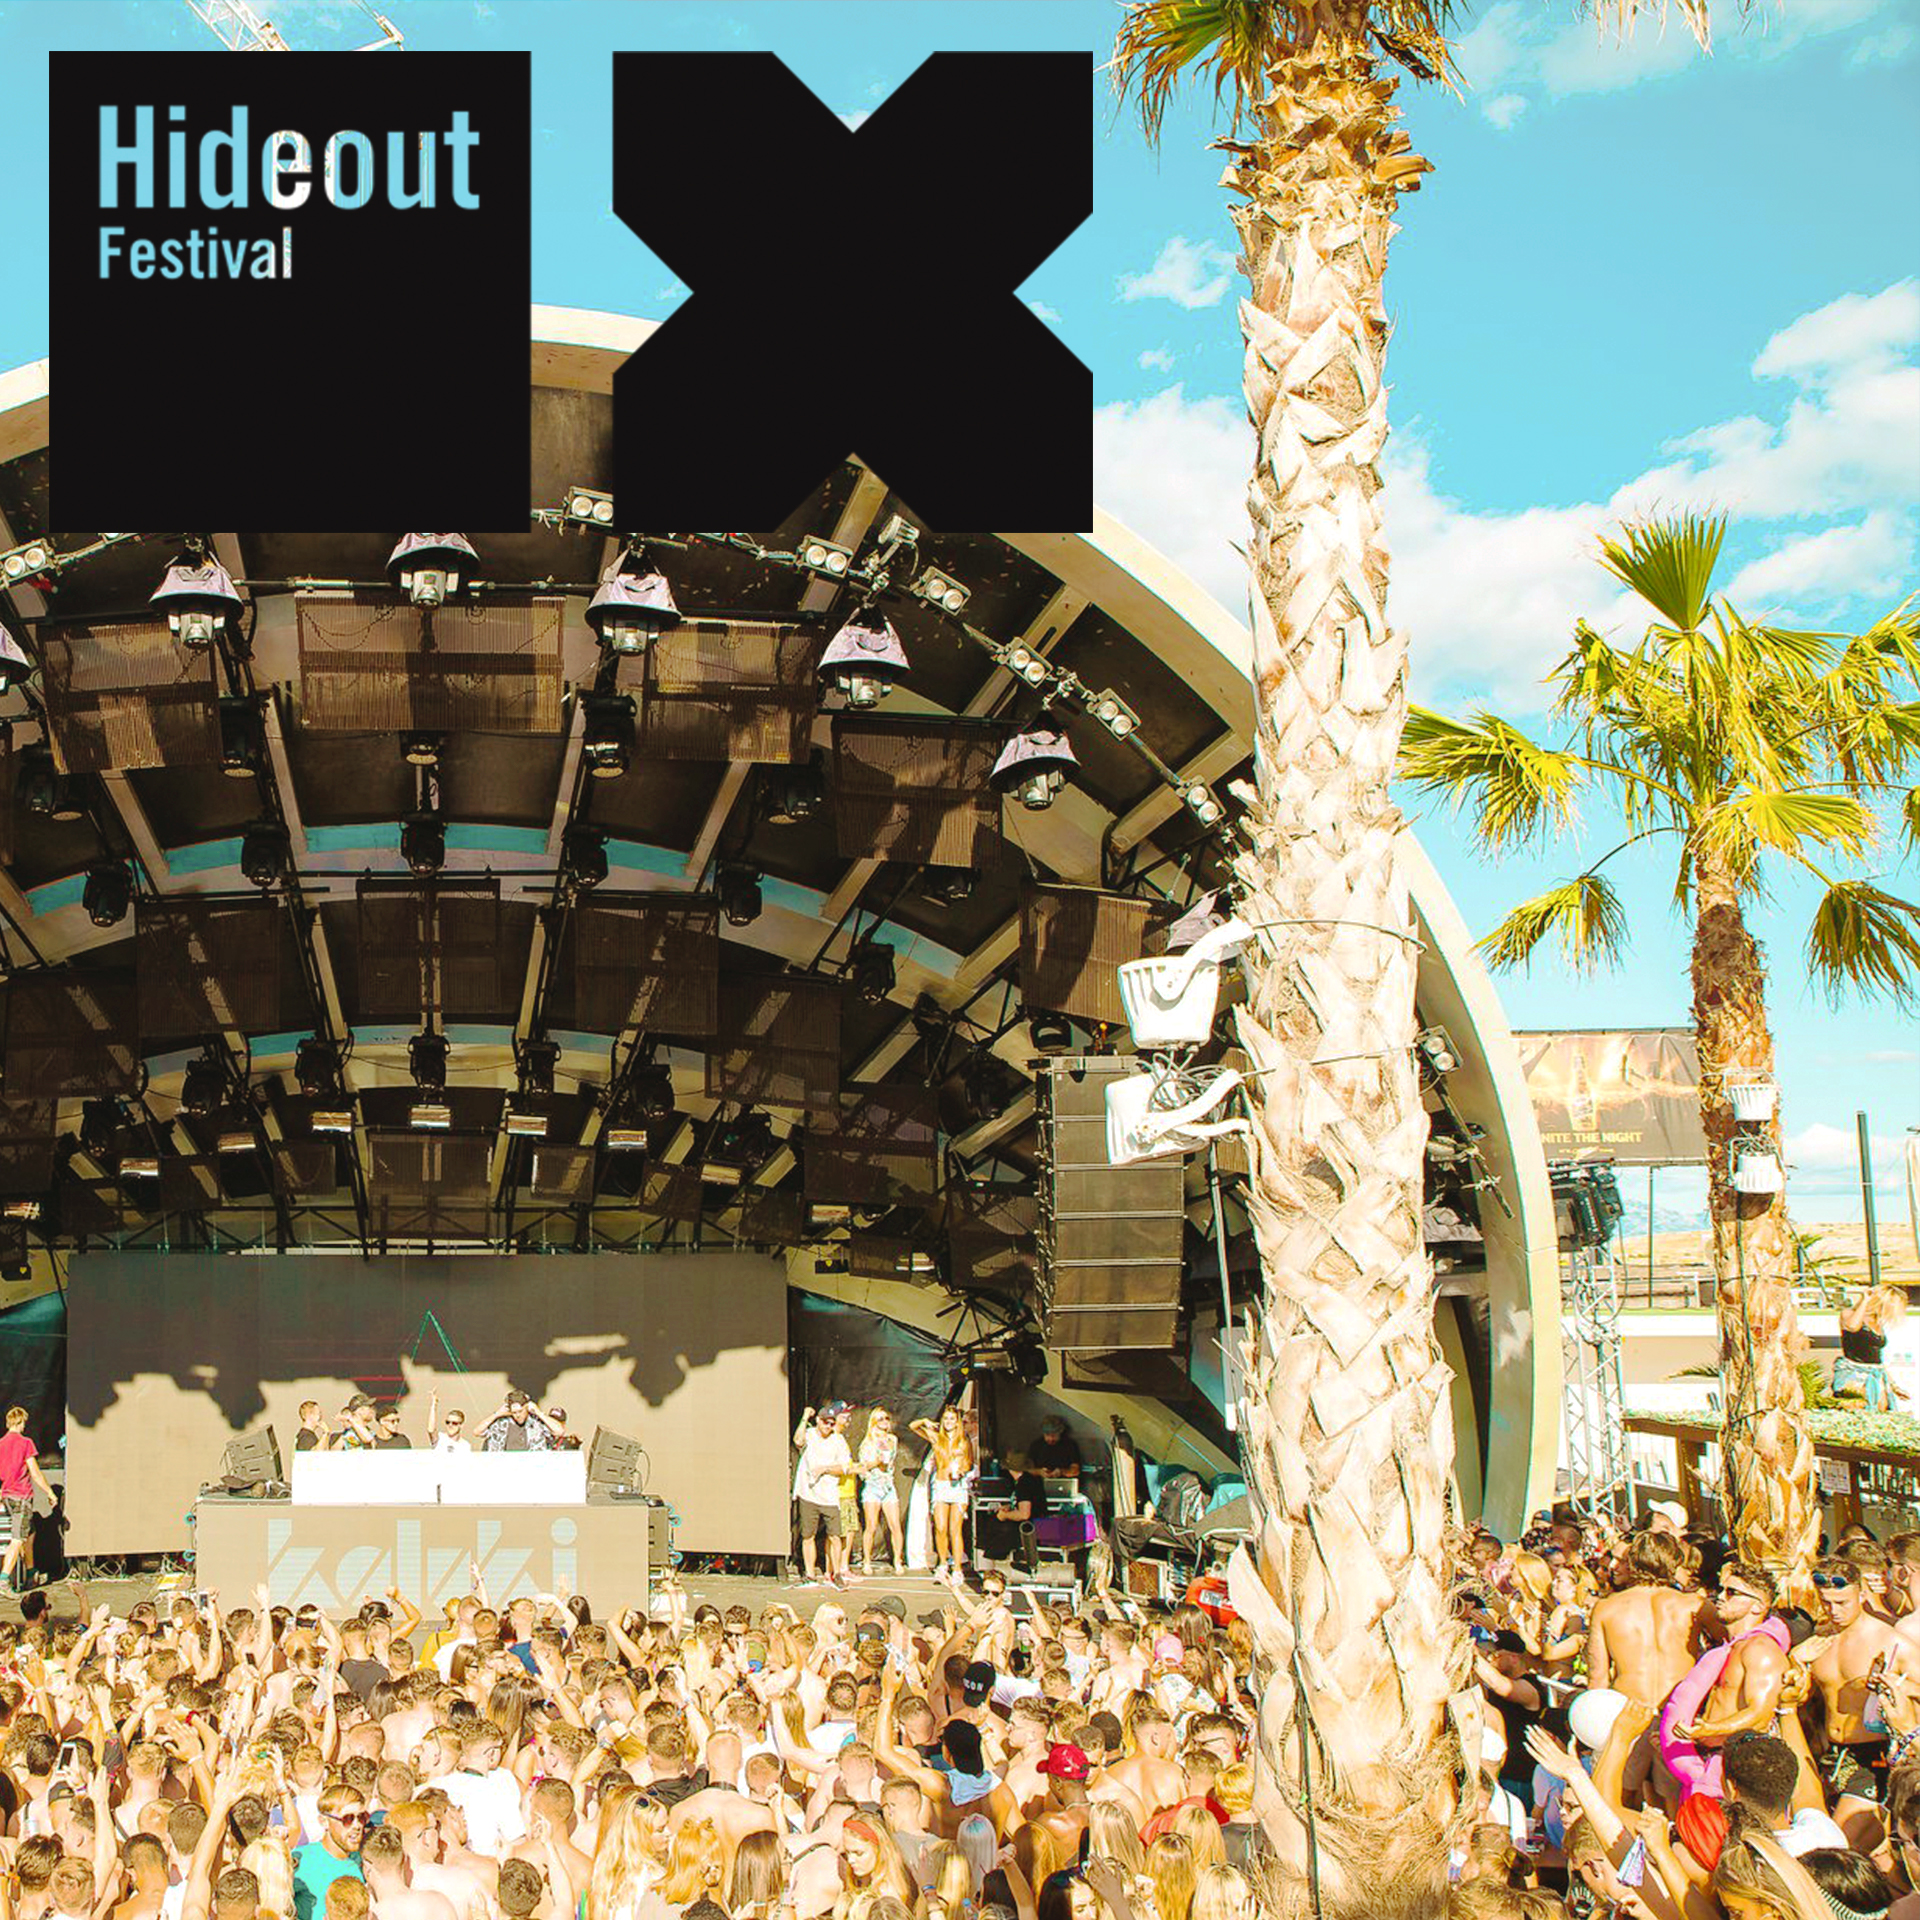 Hideout Festival 2019 - The Best of Tech-House and Techno - zrce eu